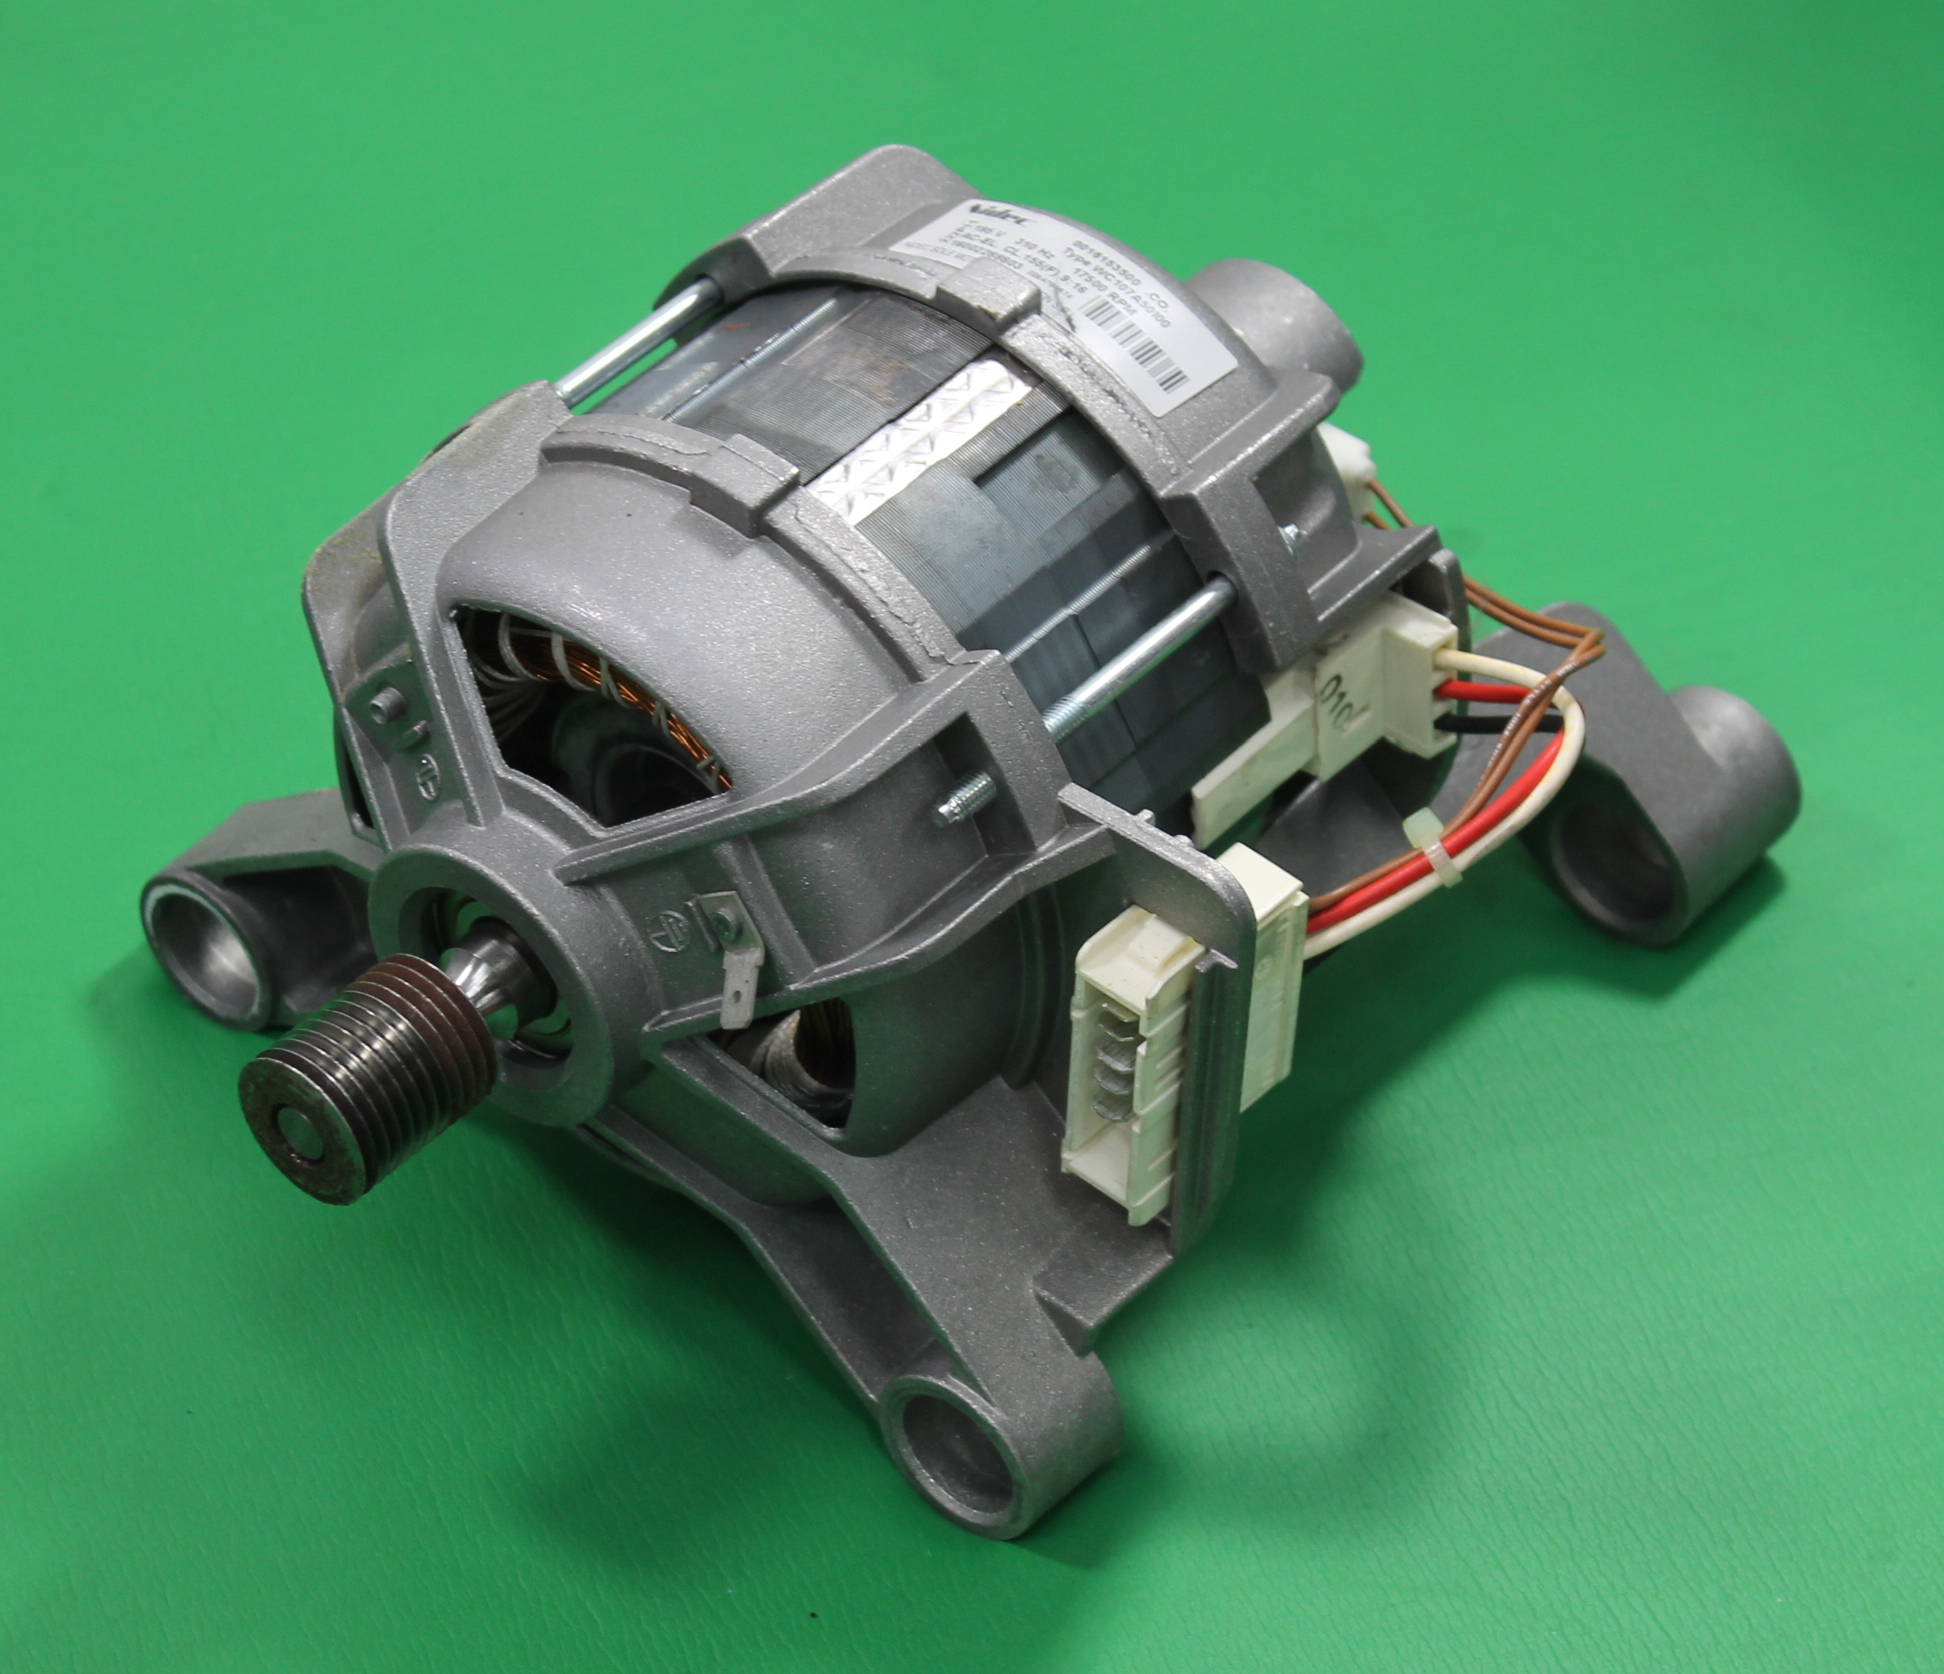 Hotpoint Bhwd149 Washer Dryer Motor Nidec Type Wc107a50i00